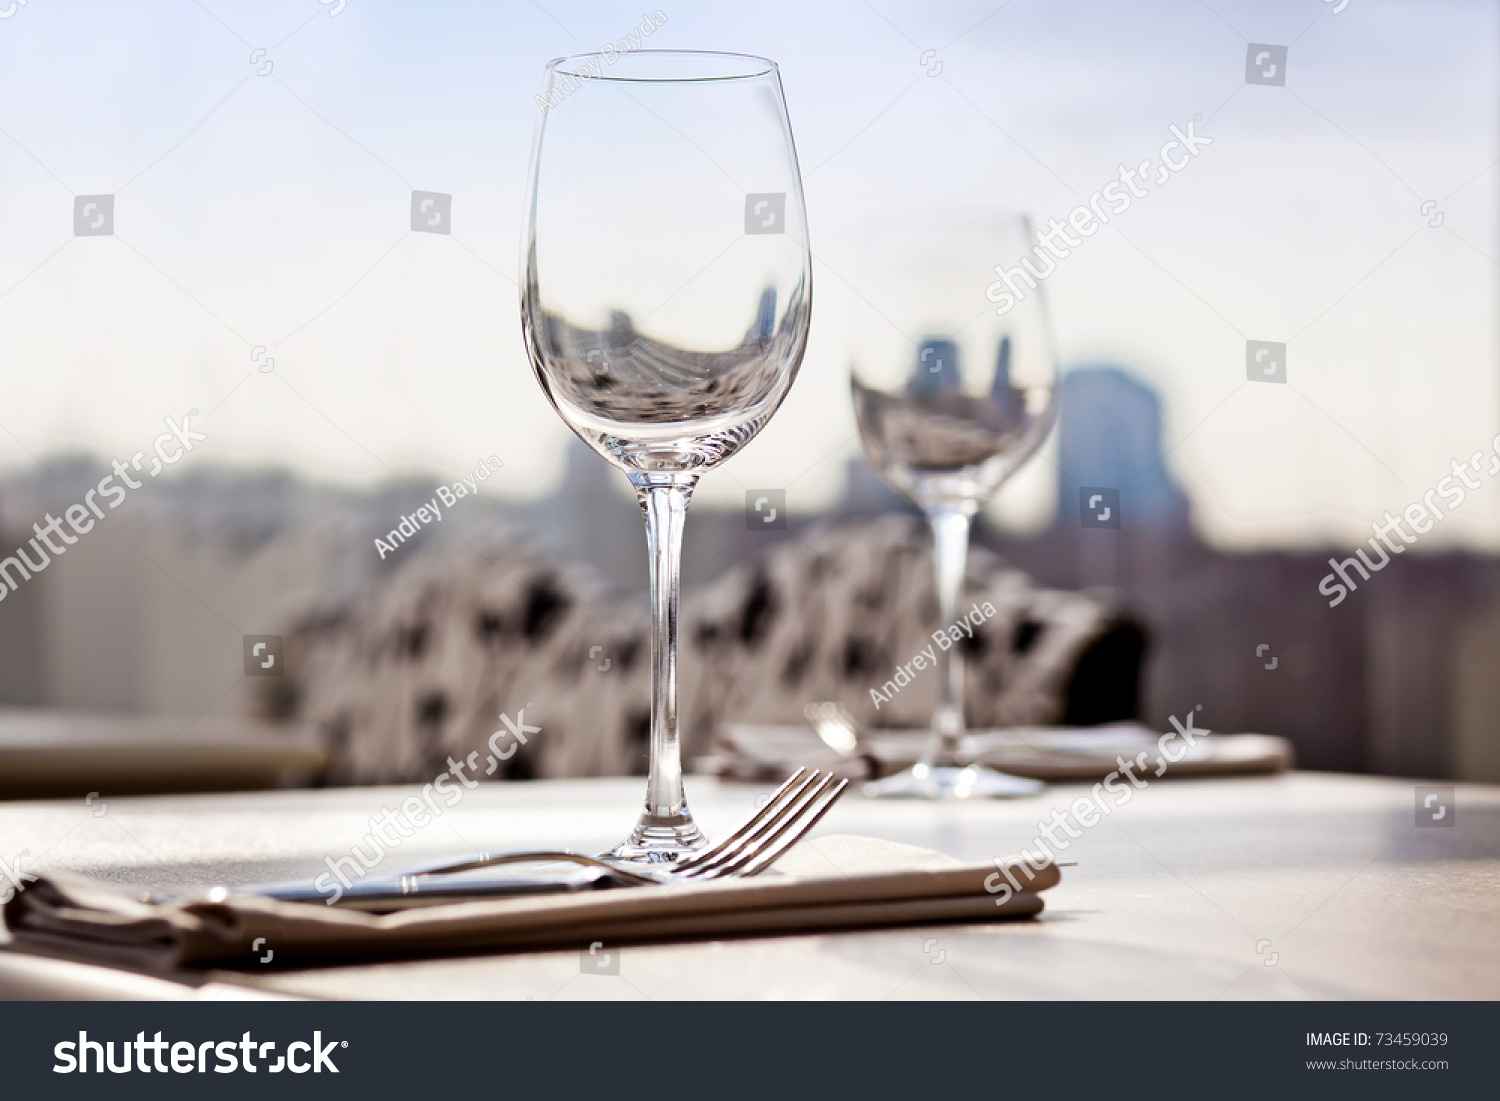 Fancy restaurant table setting - Fine Restaurant Dinner Table Place Setting Napkin Wineglass